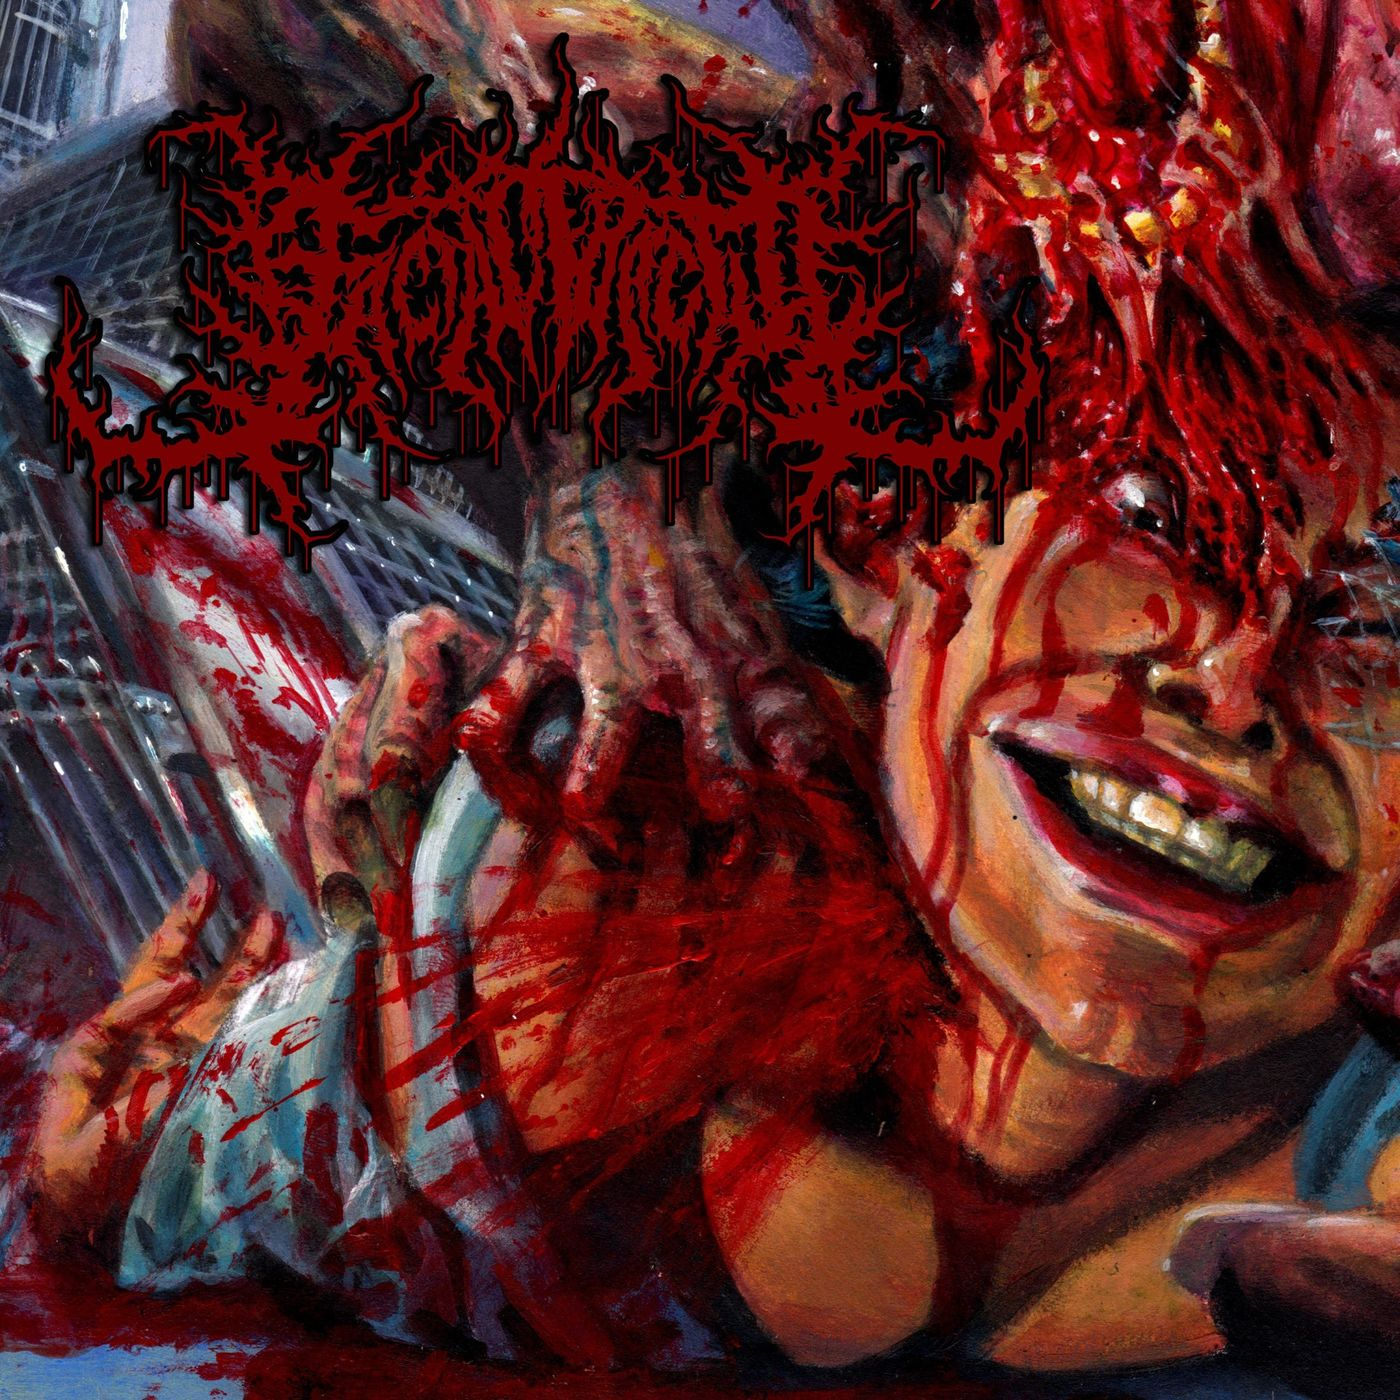 Facial Fracture - Carnivorous Myocardium Engorgement [single] (2021)